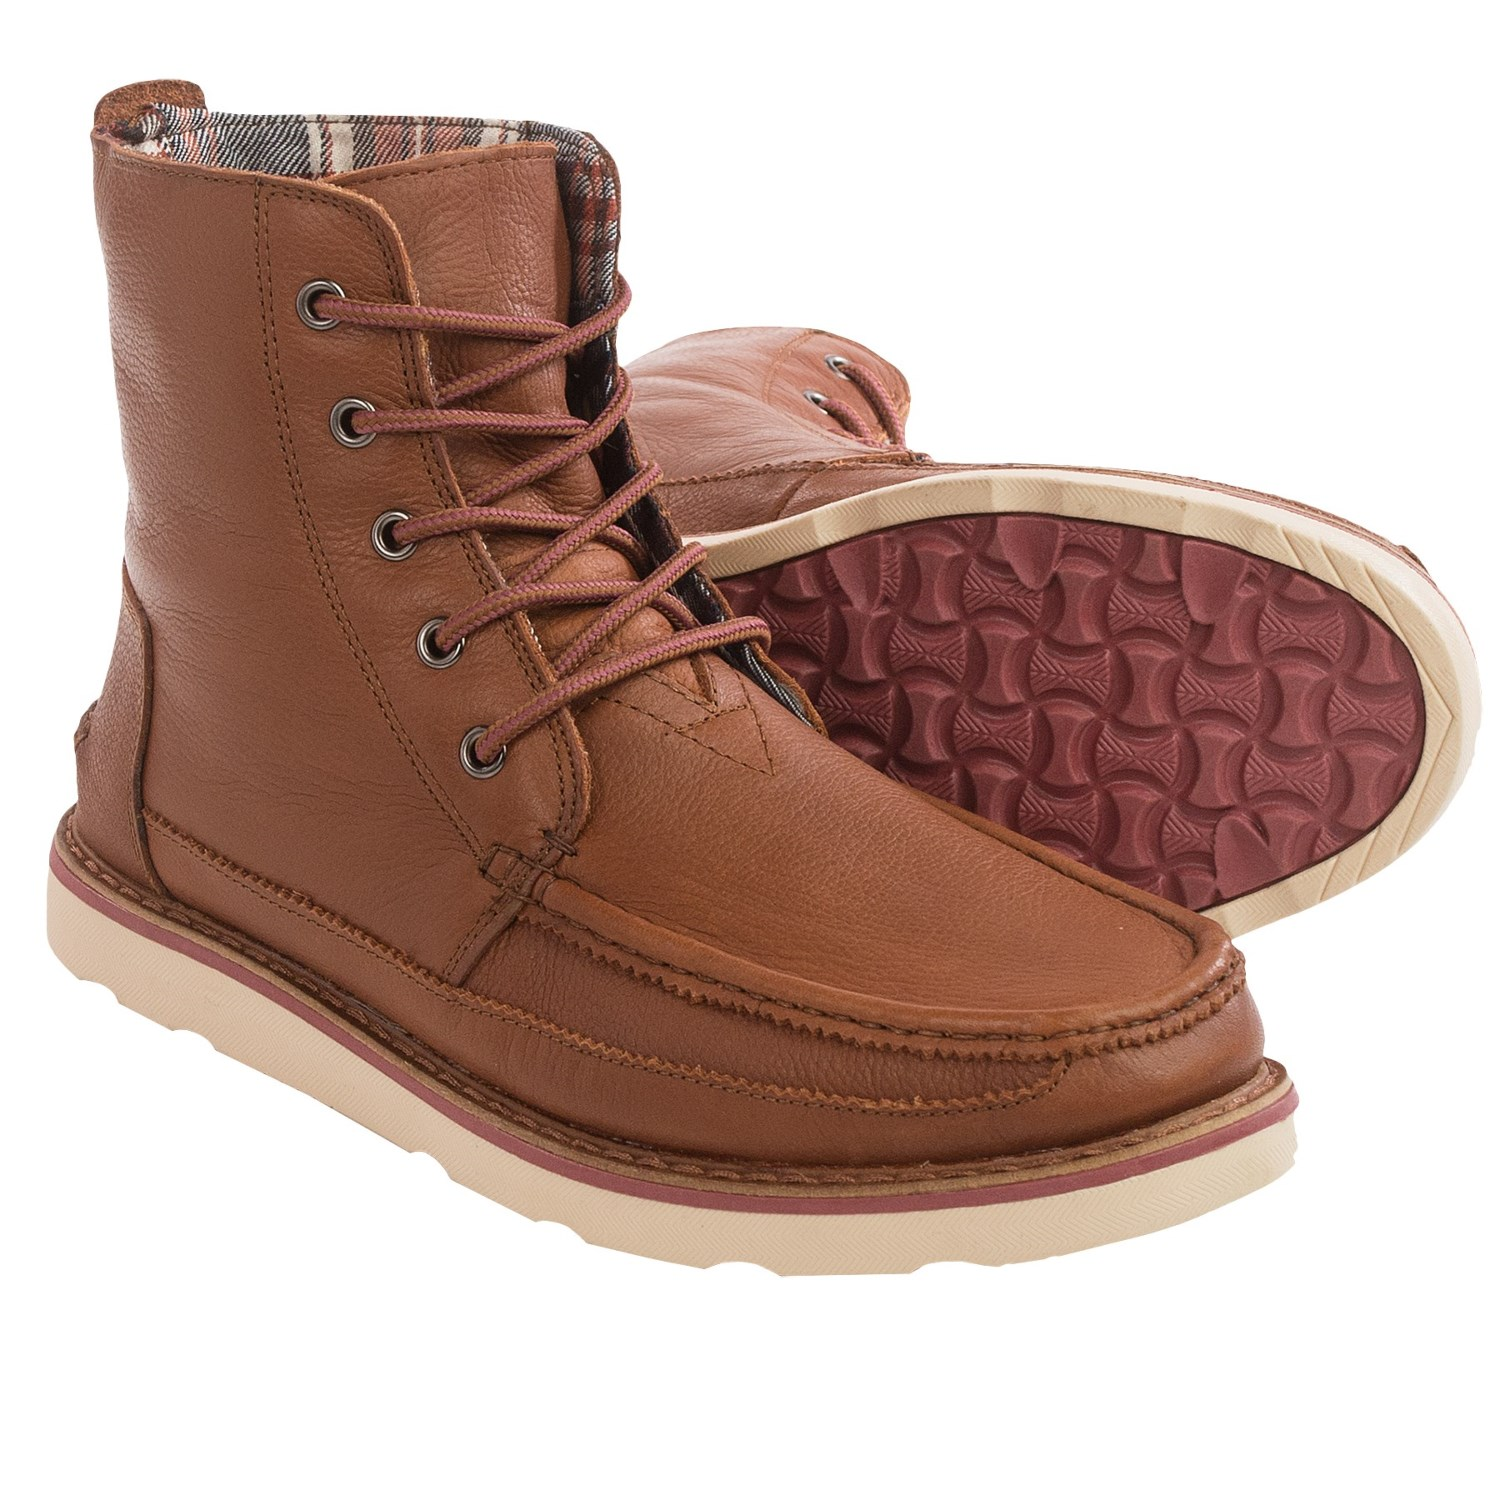 toms searcher leather boots for